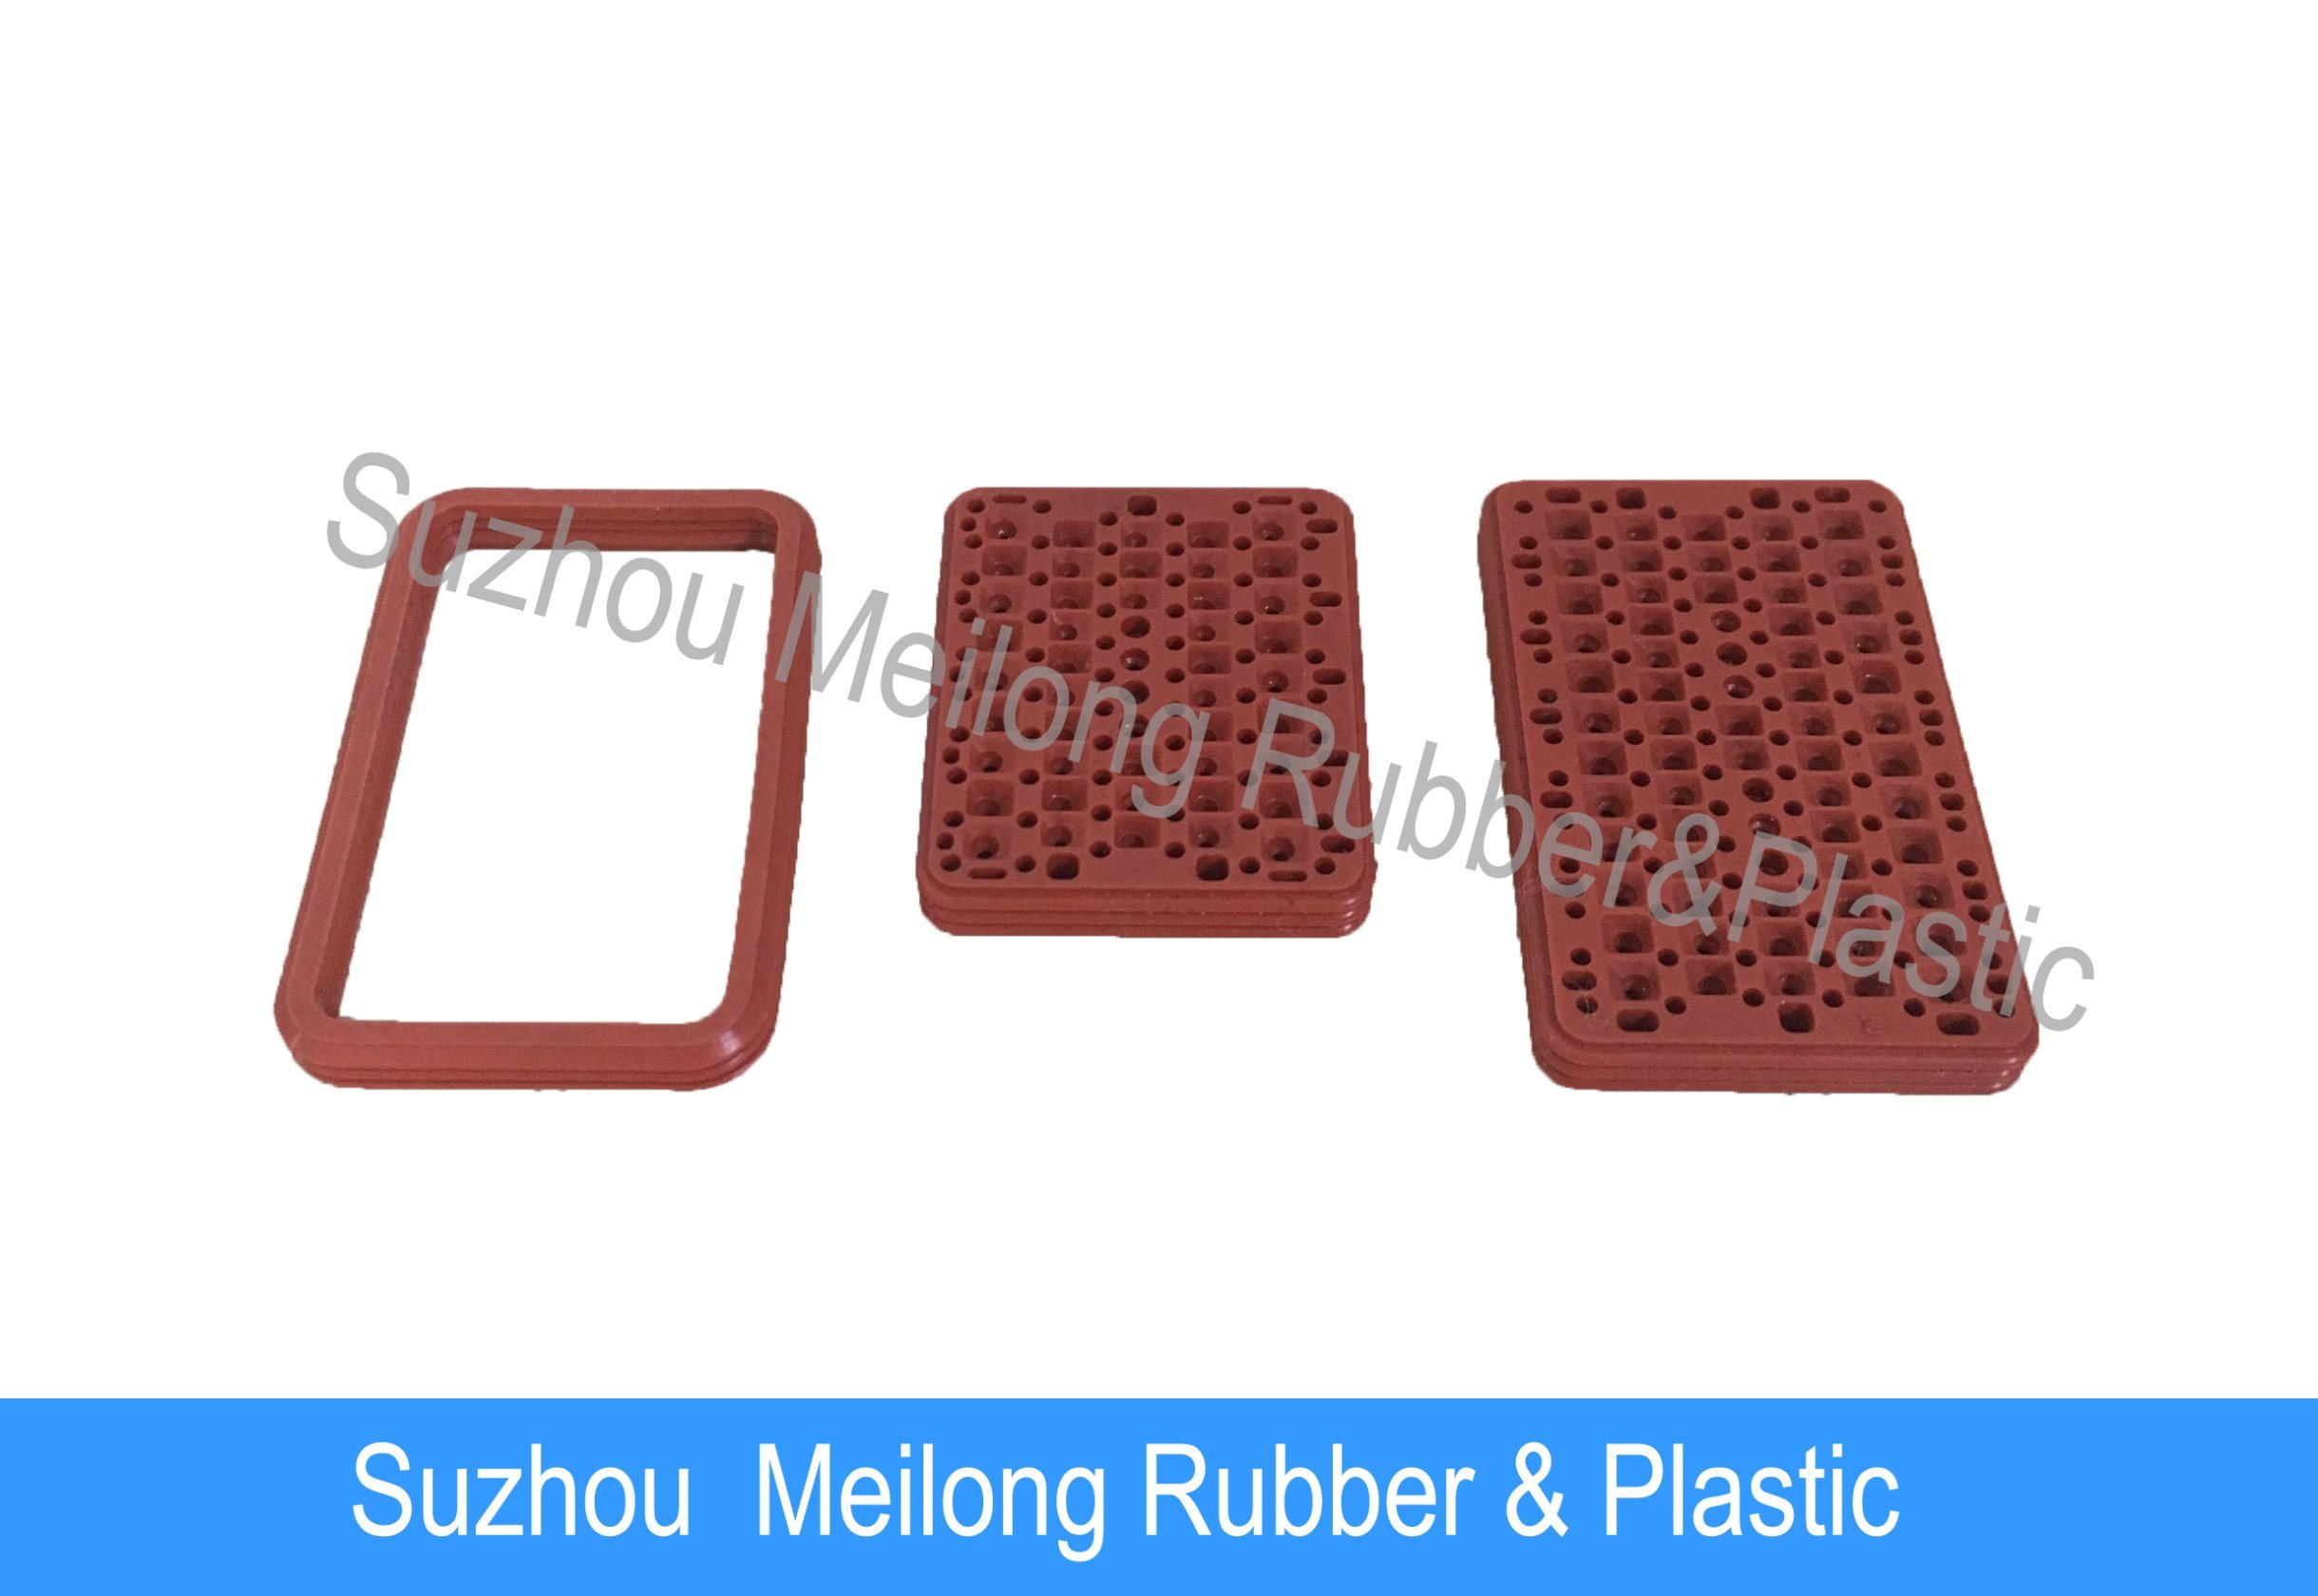 Molded Silicone Rubber Product for Sealing